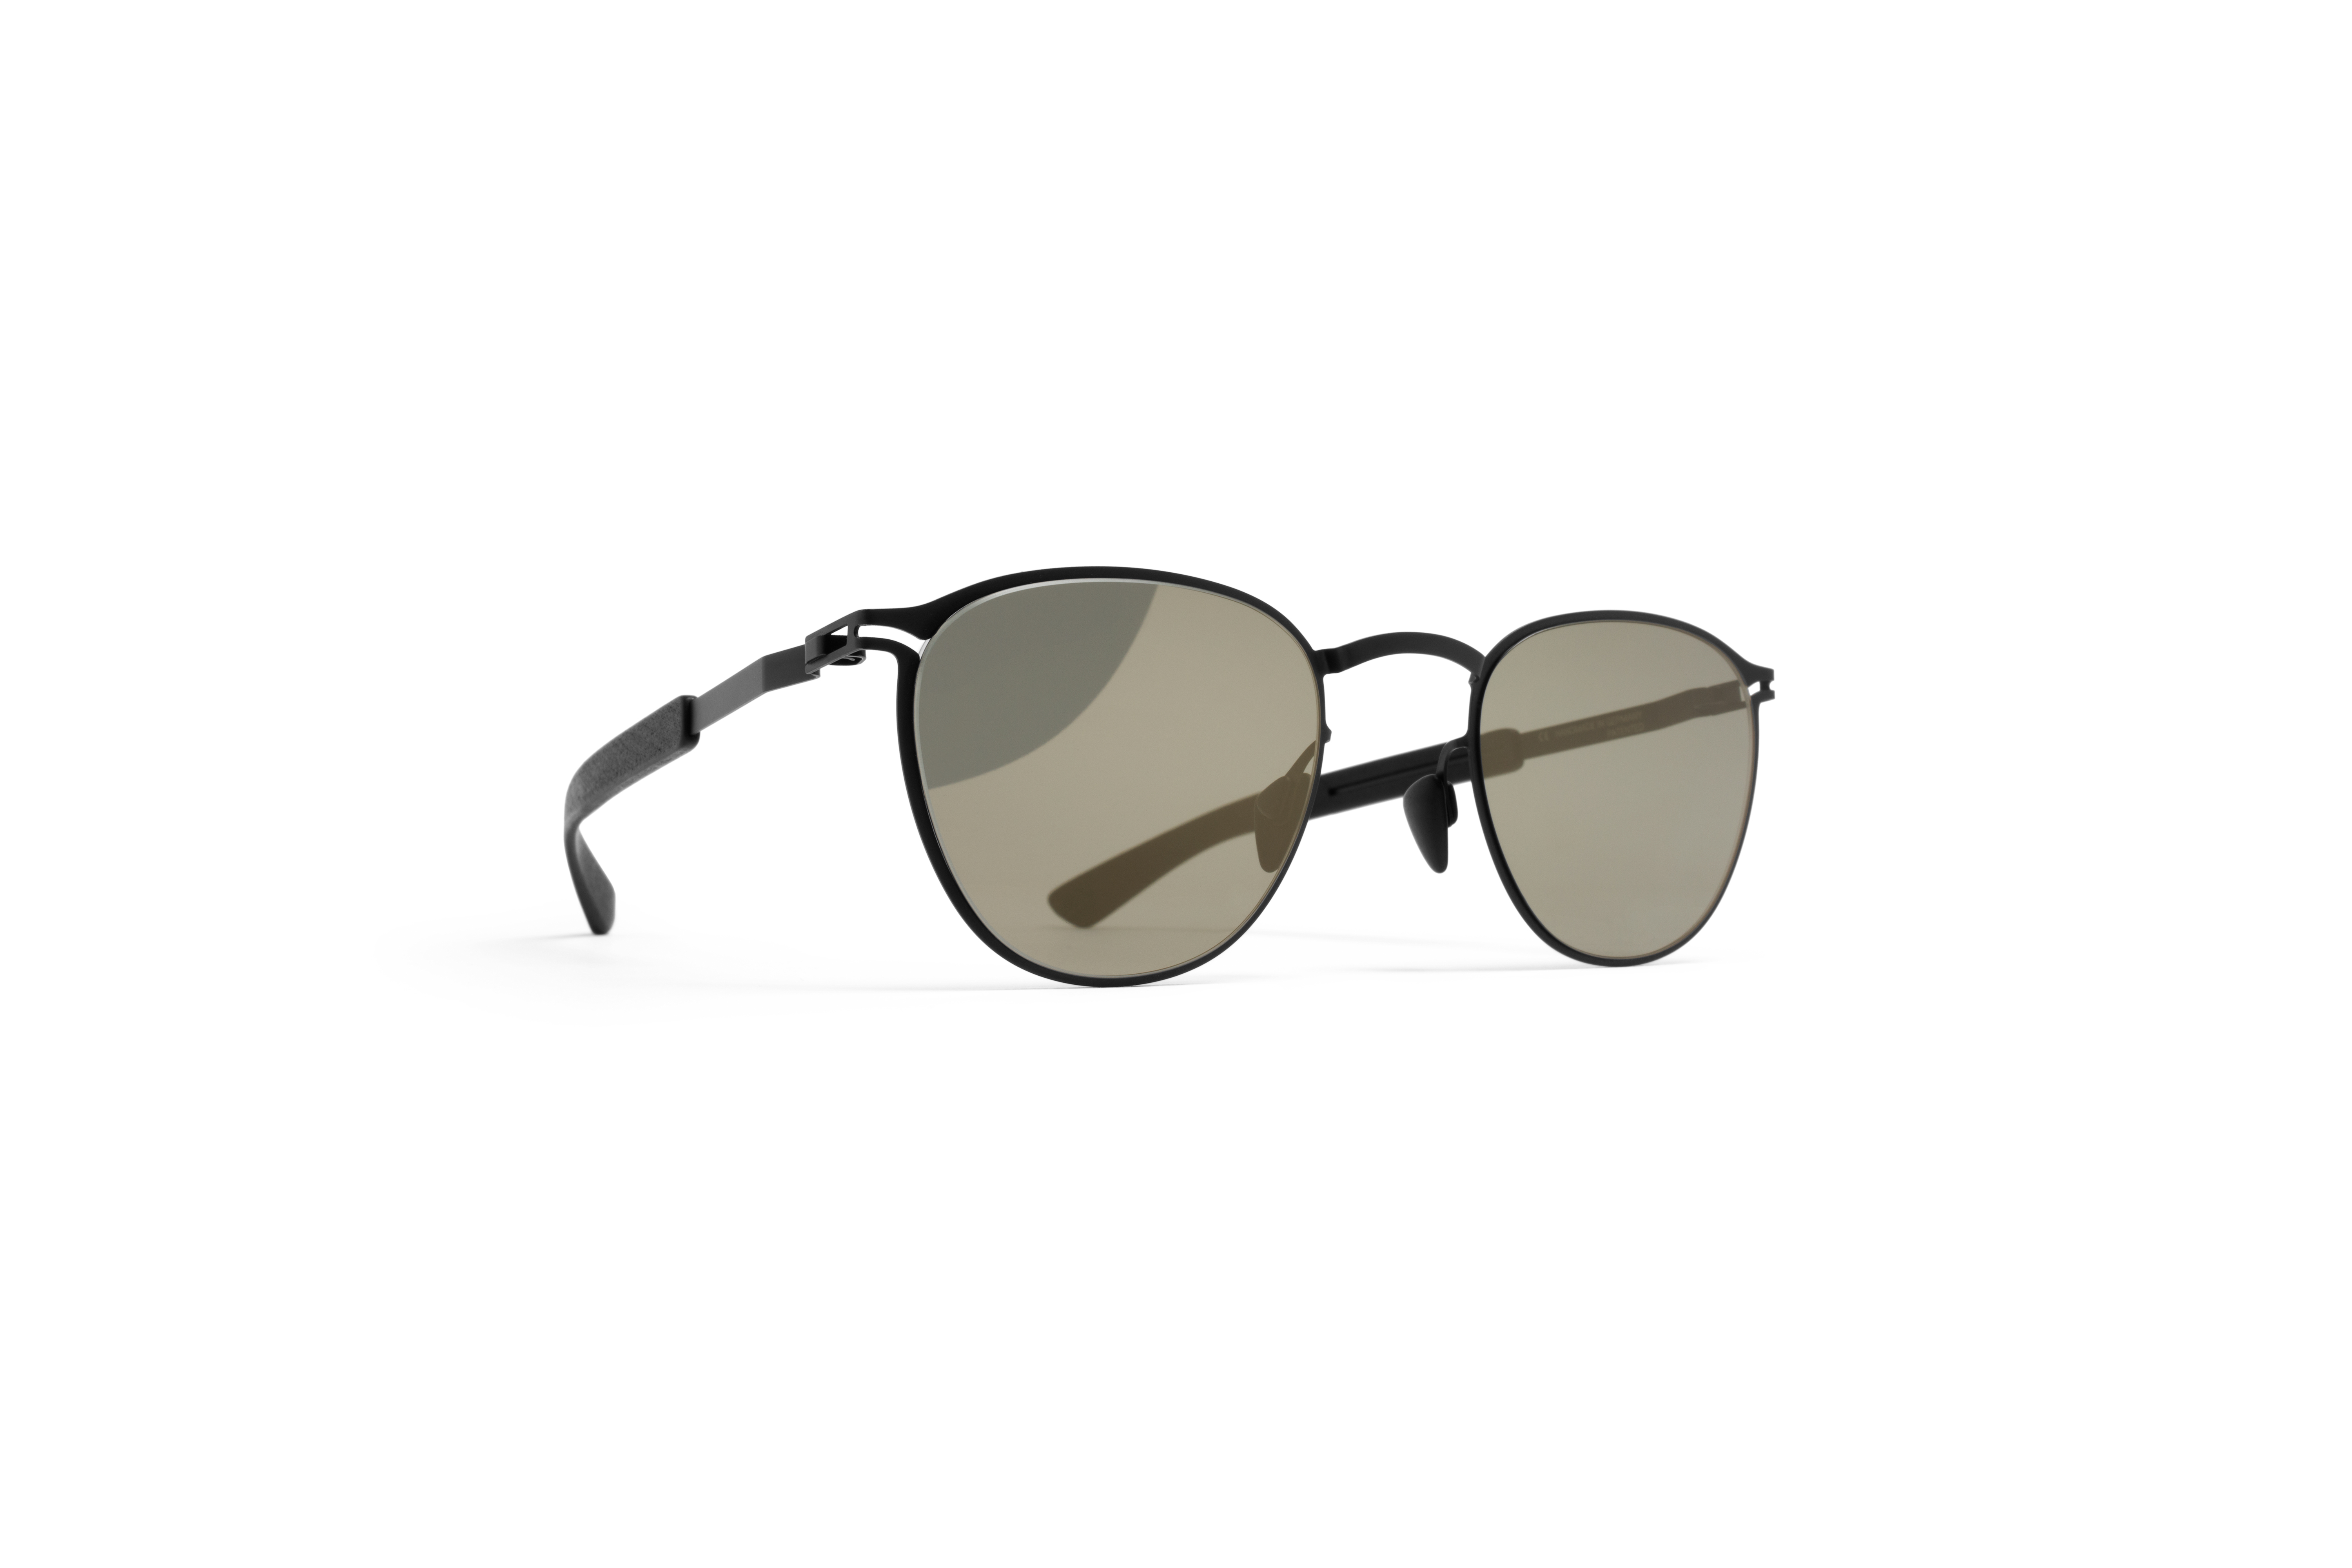 MYKITA Mylon Rx Clove Mh1 Black Pitch Black Gunmet57d03070c831b